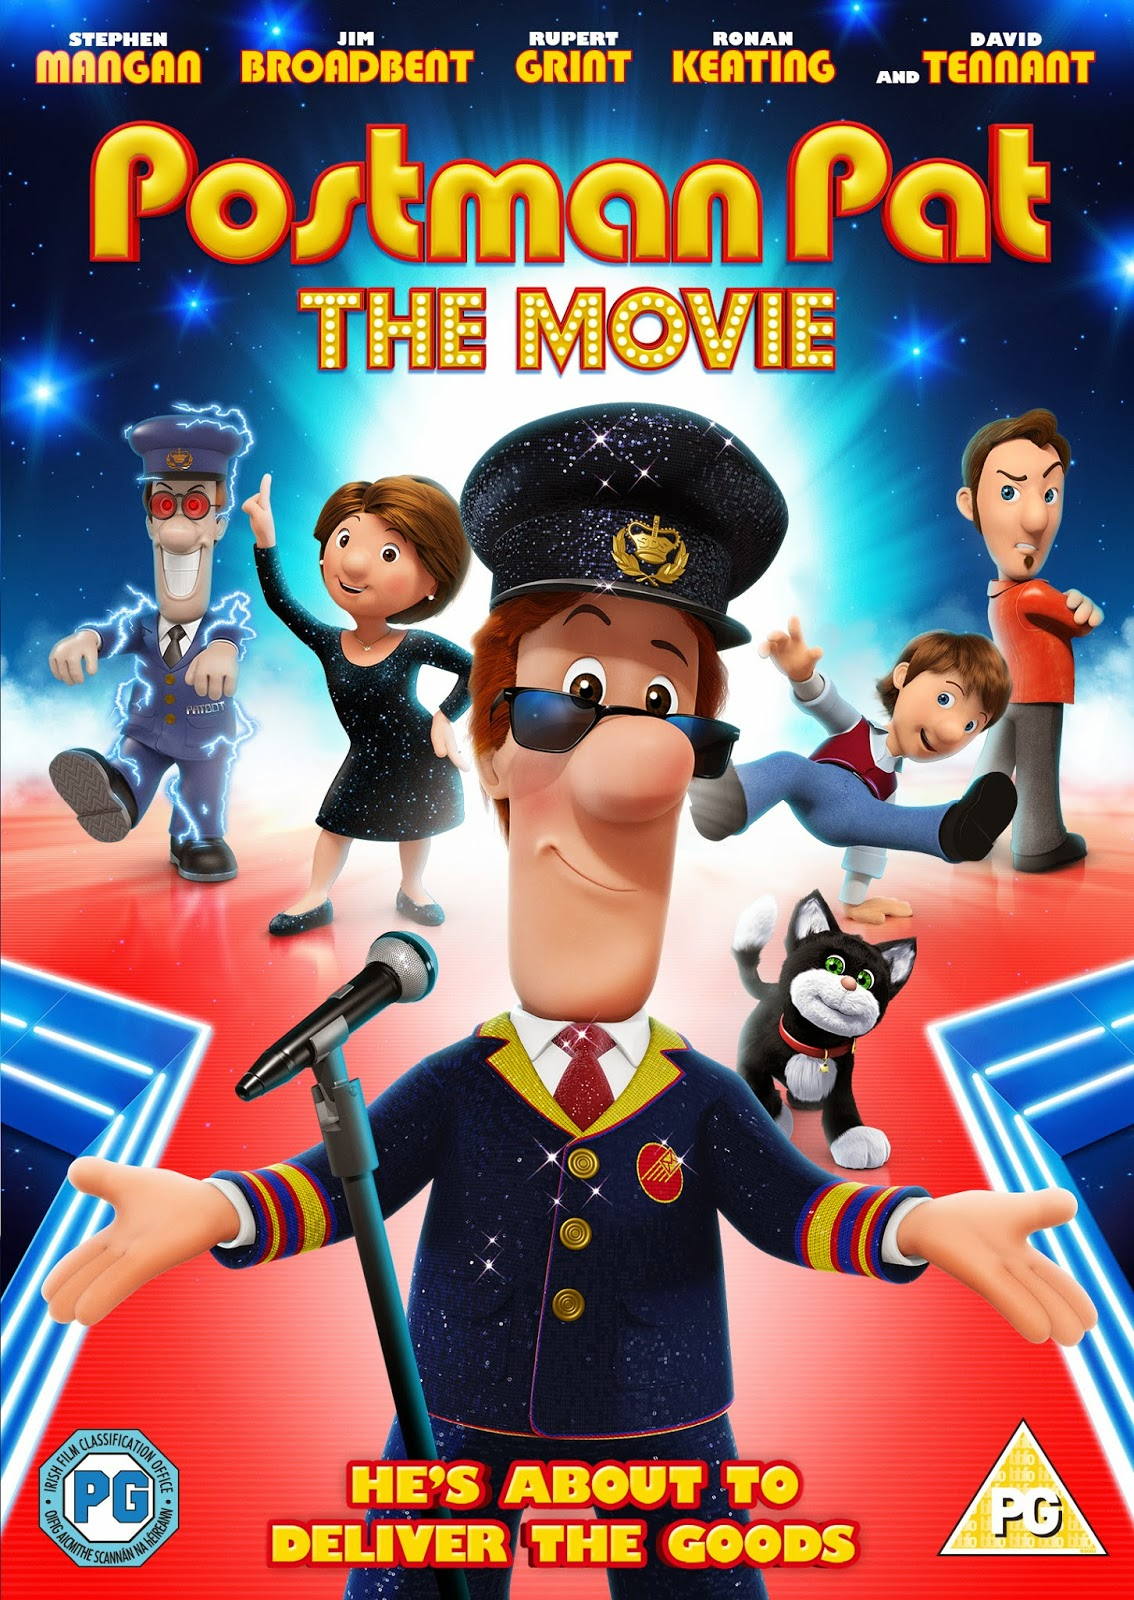 Postman Pat The Movie DVD Review